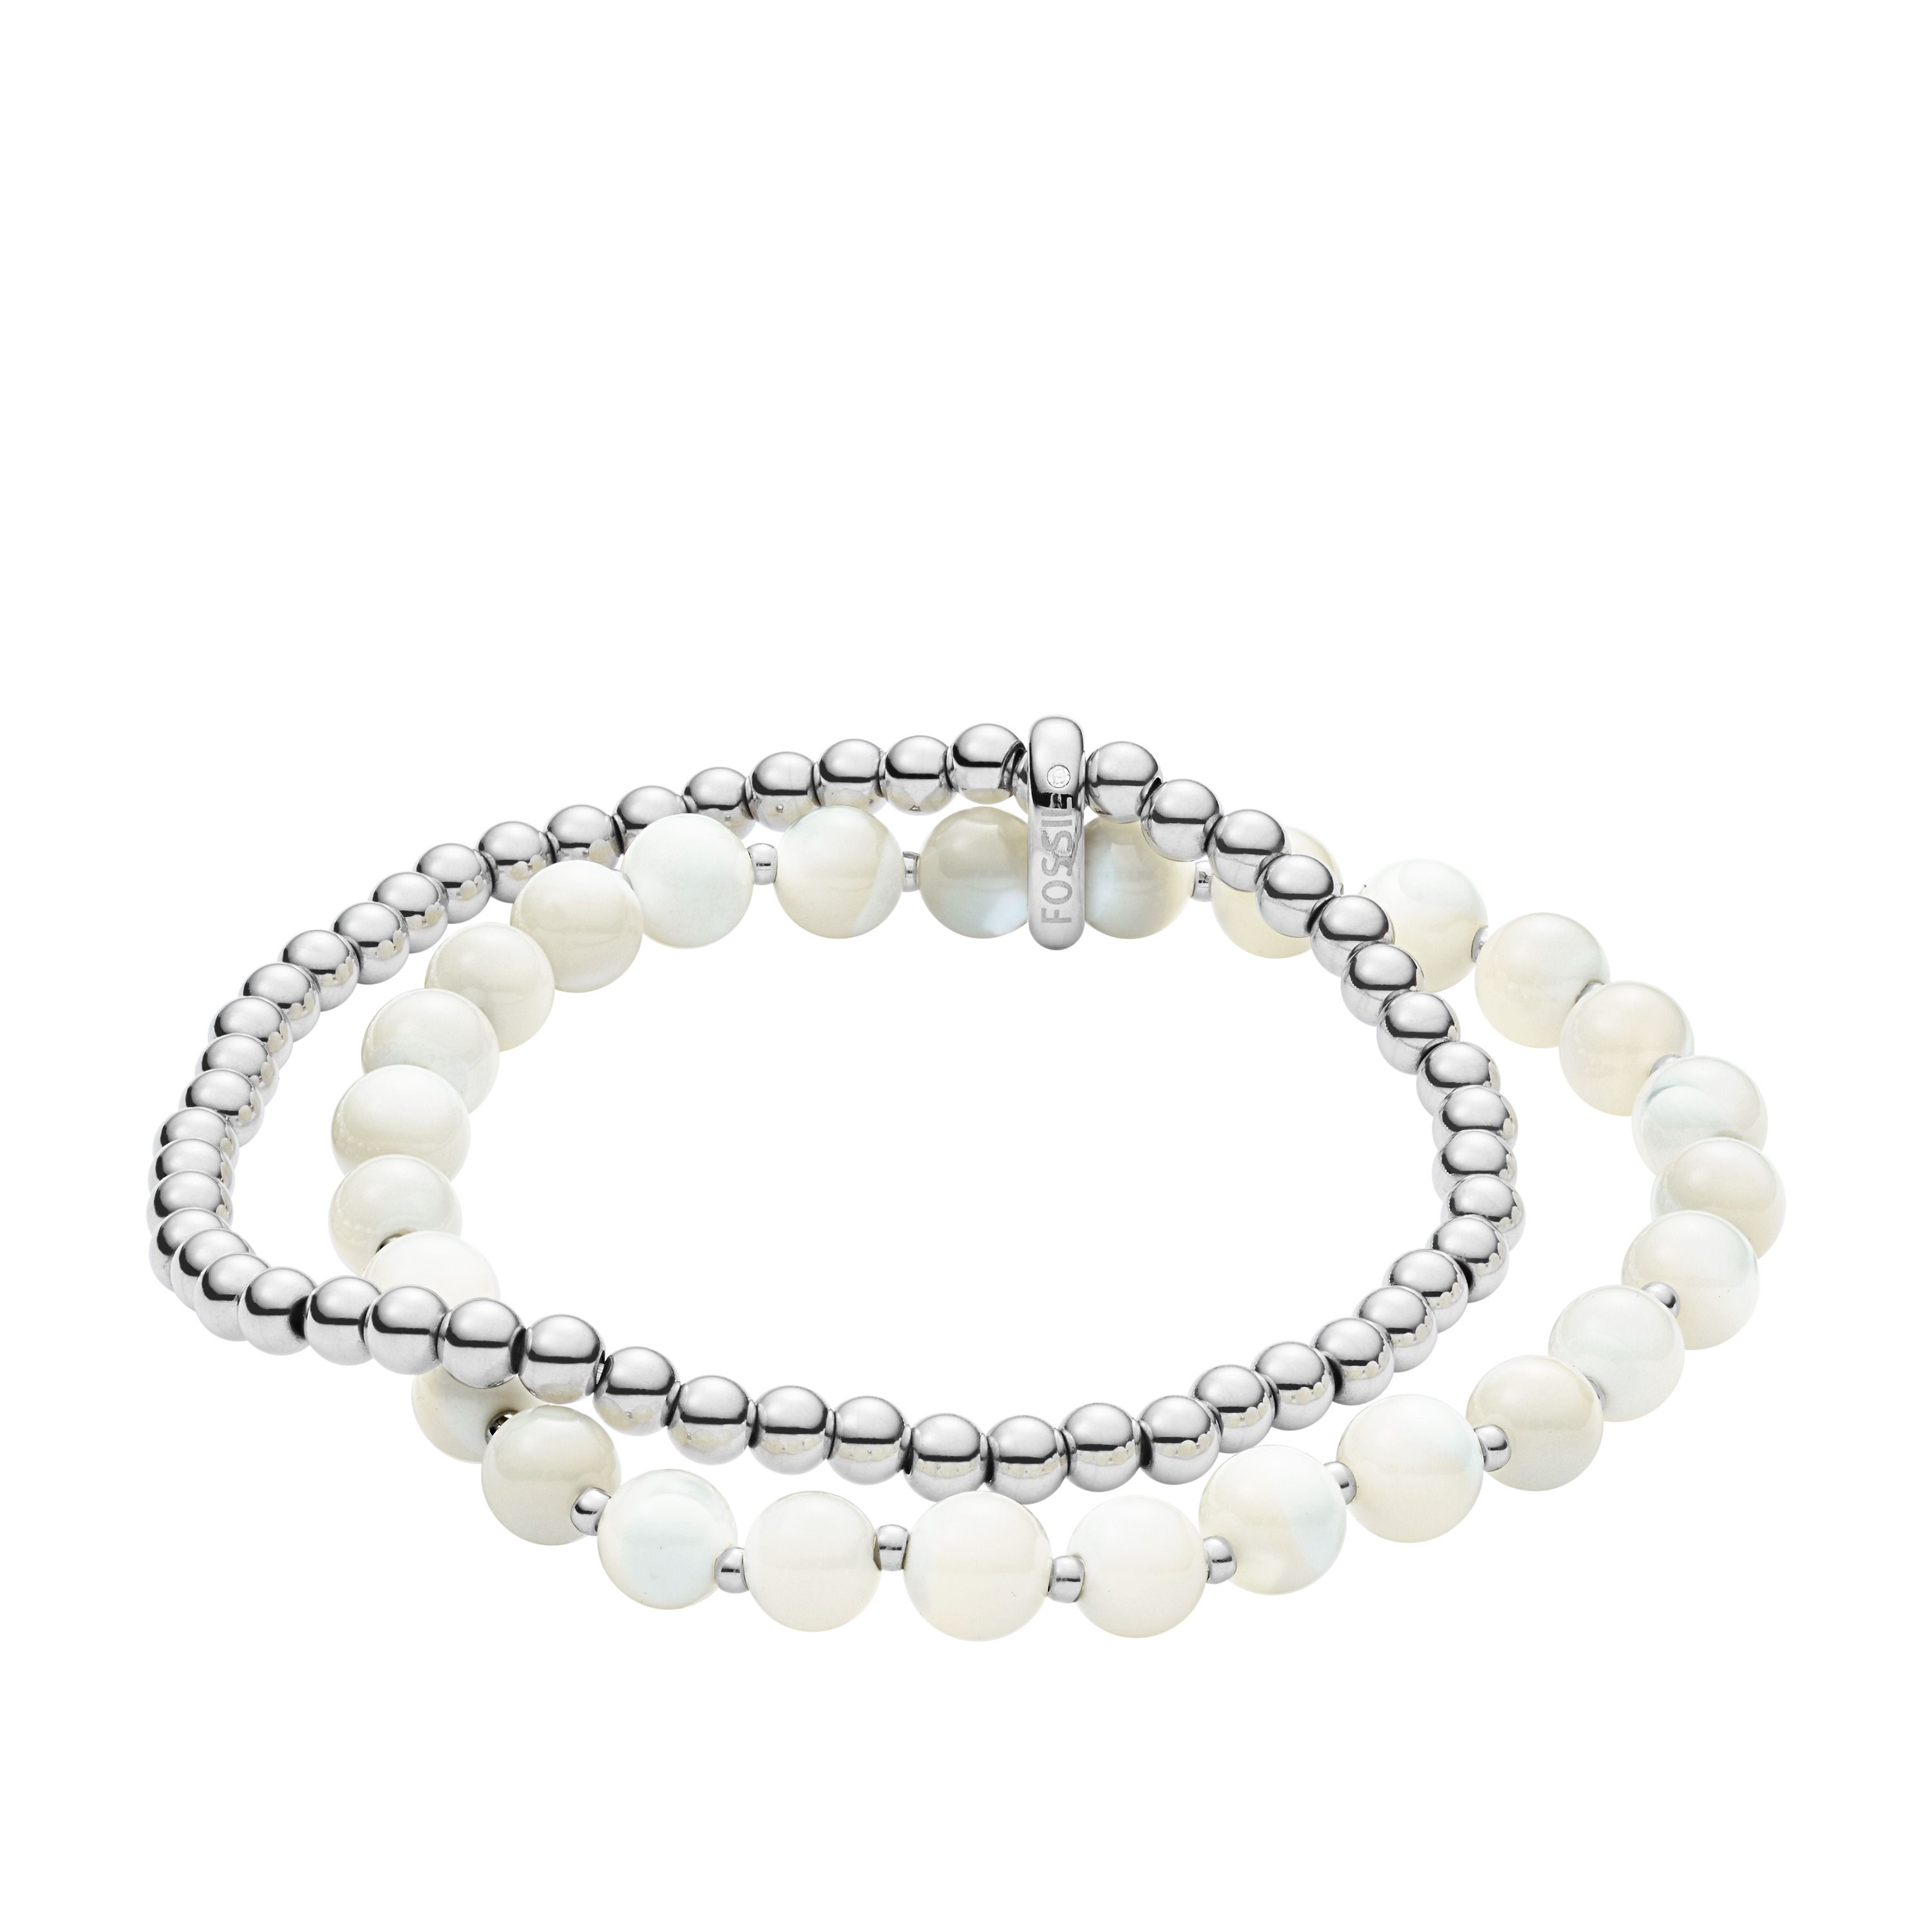 Fossil Mother-Of-Pearl Steel Double-Chain Bracelet, Silver